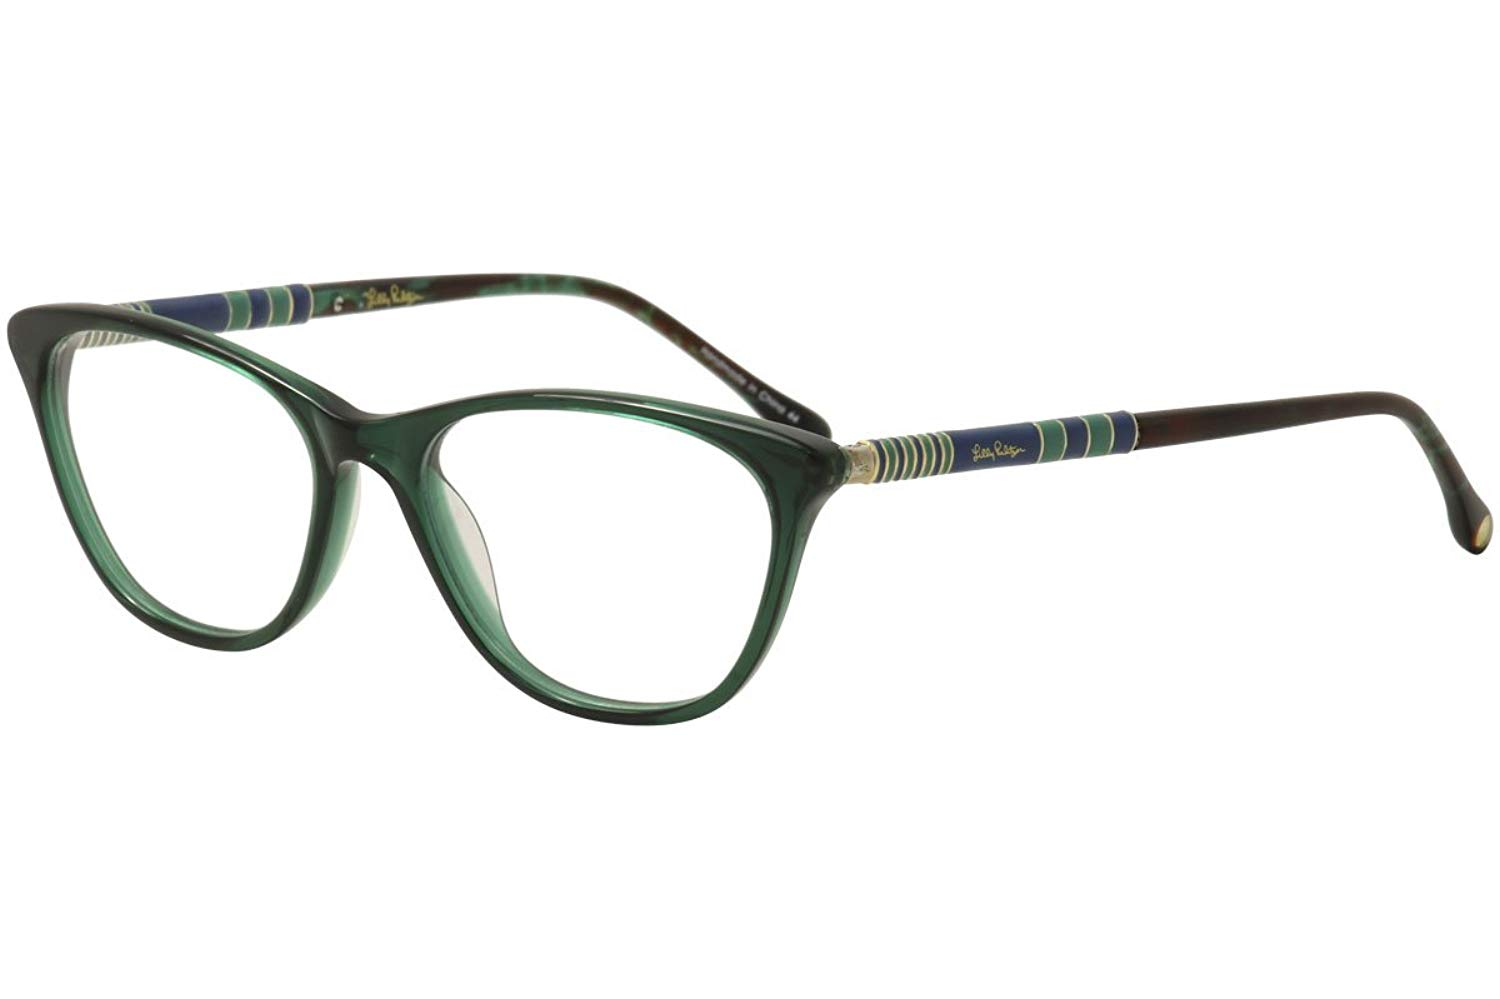 548dfa08e5a60 Buy Elizabeth and James EJO1301 GRAMERCY Tortoise and Clear ...